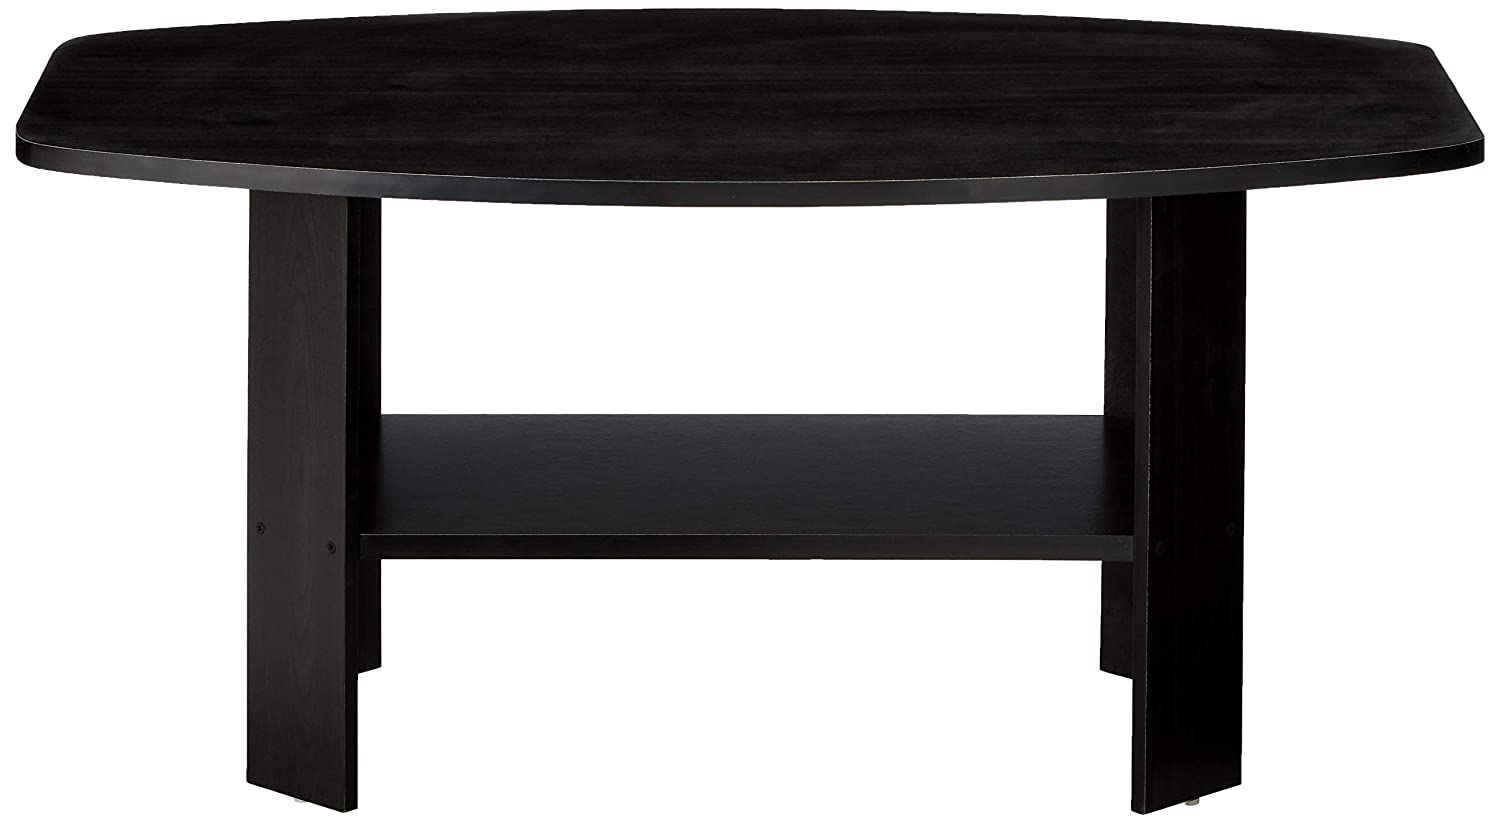 Espresso 34.5 x 21.5 x 16.3 inches ; 17.5 pounds Furinno 11179GYW//BK Table Basse